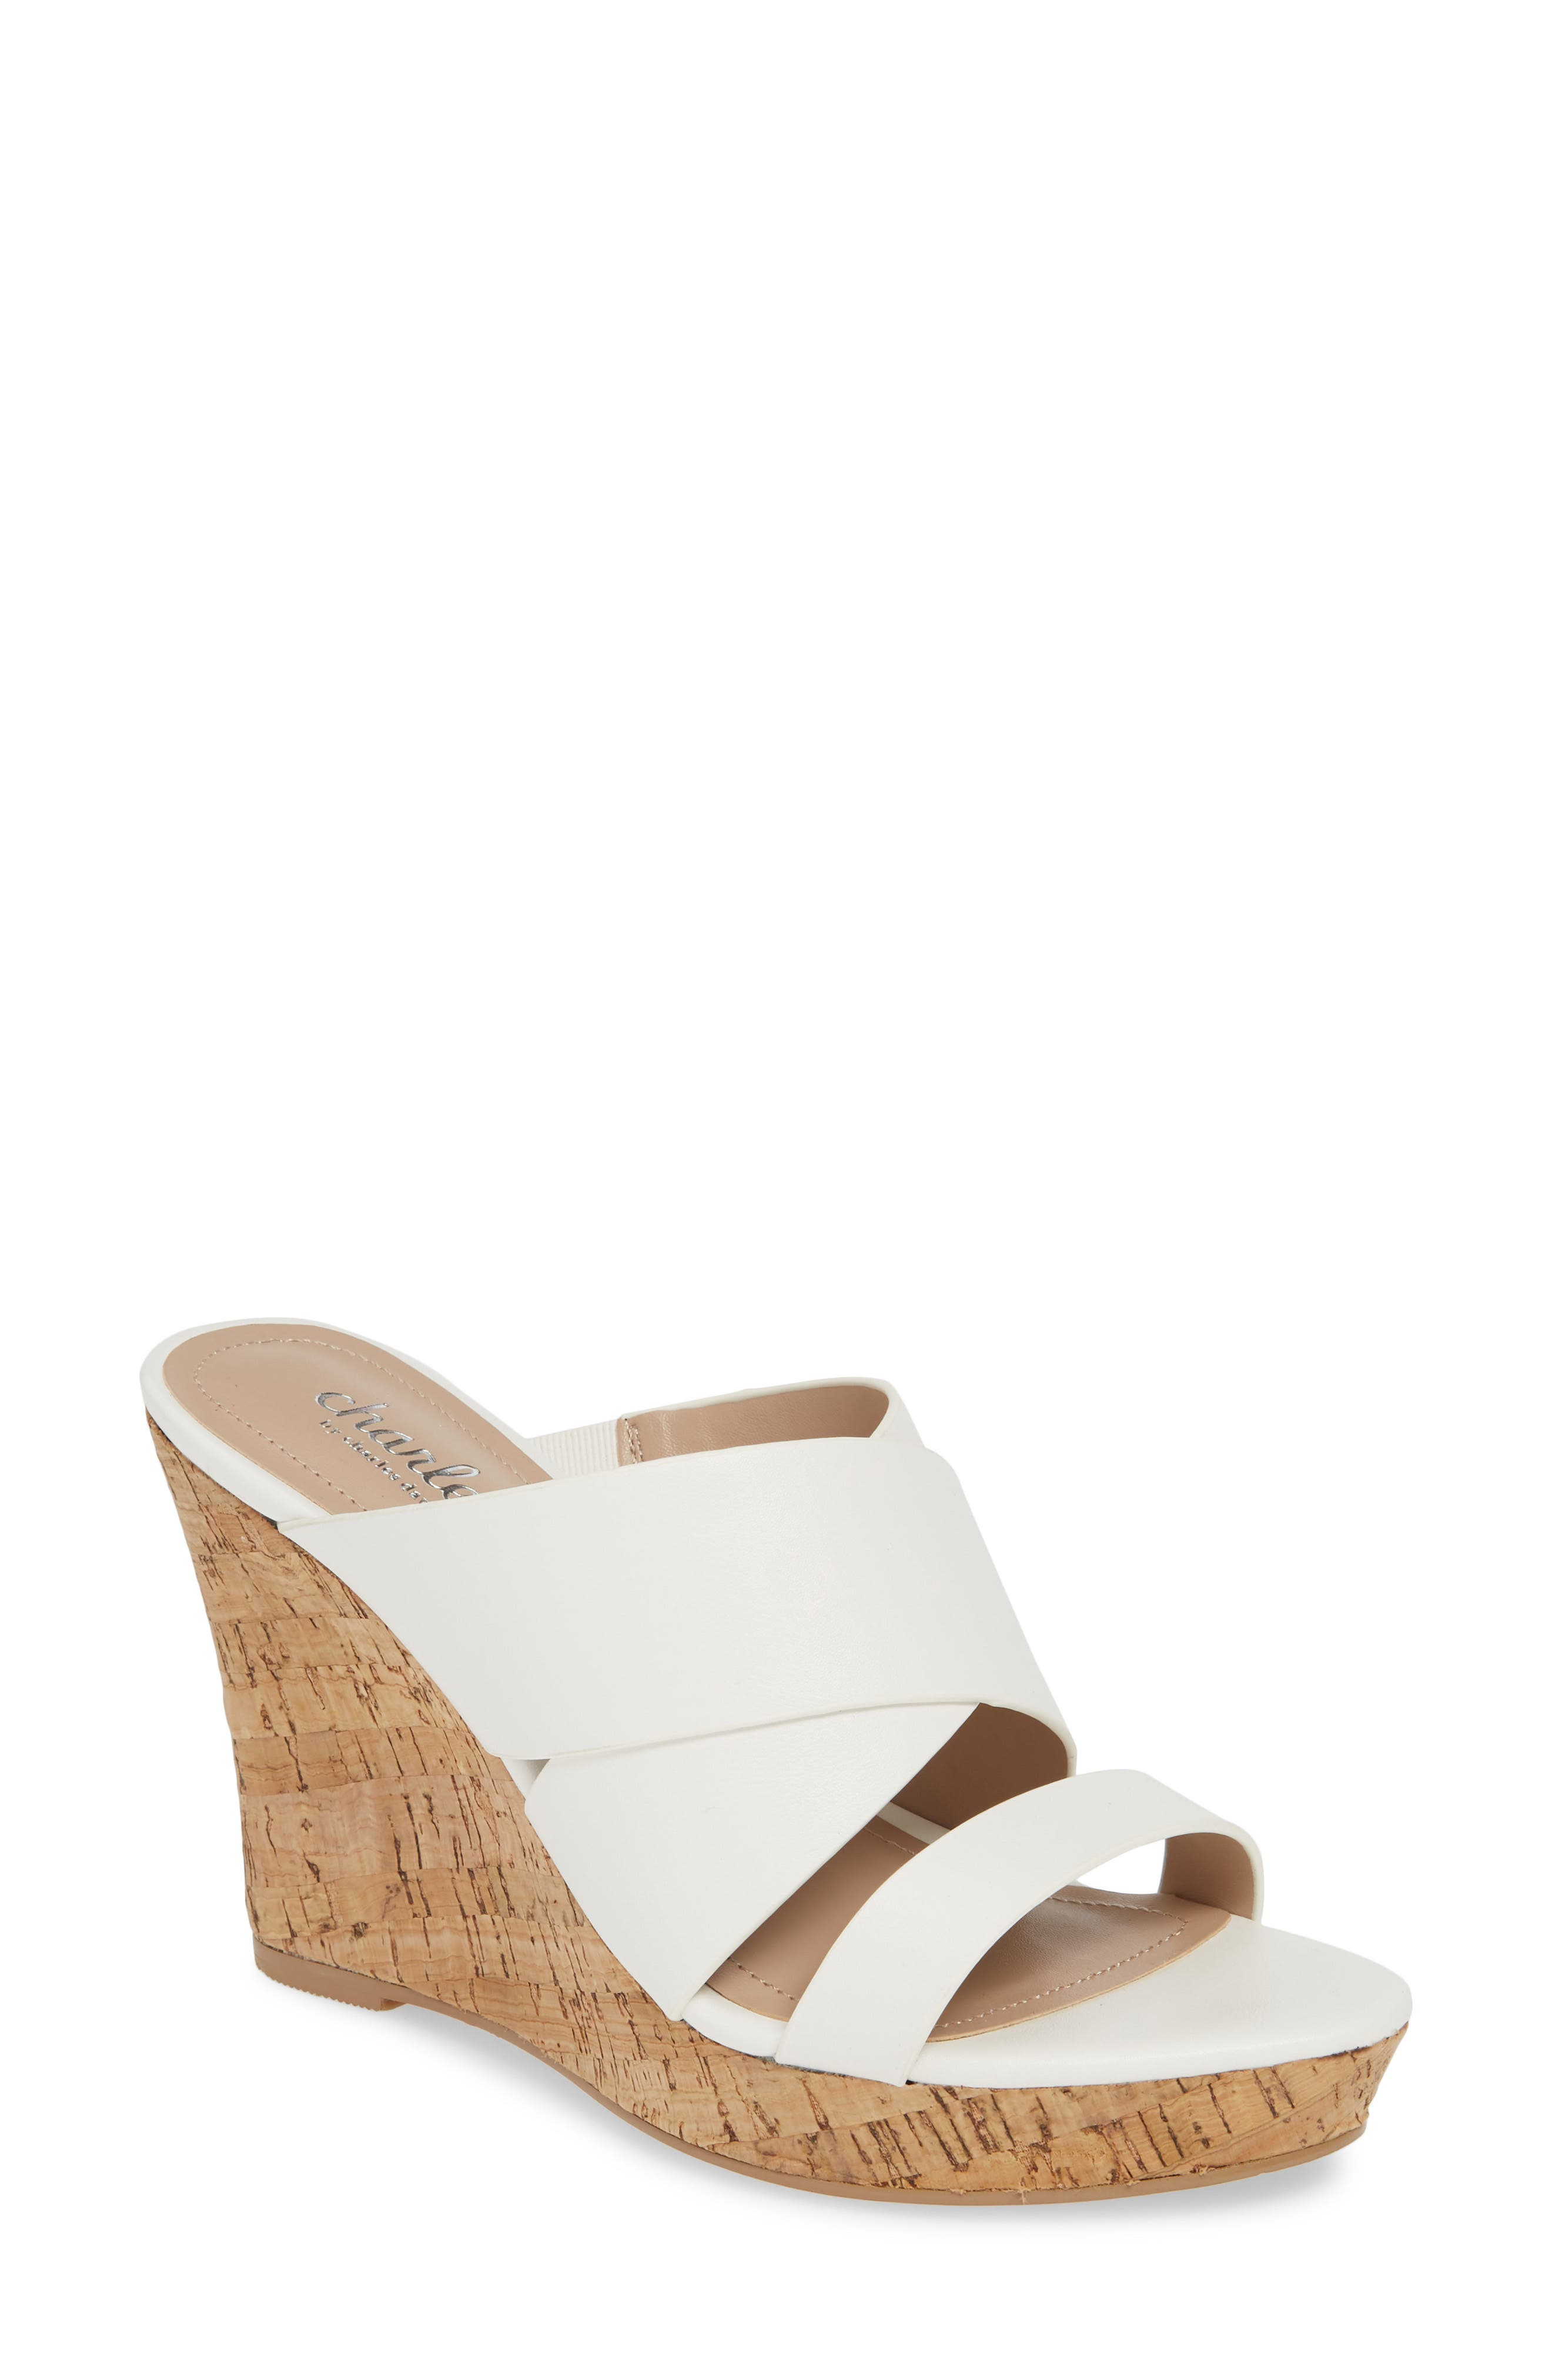 CHARLES BY CHARLES DAVID Leslie Wedge Sandal, Main, color, WHITE FAUX LEATHER